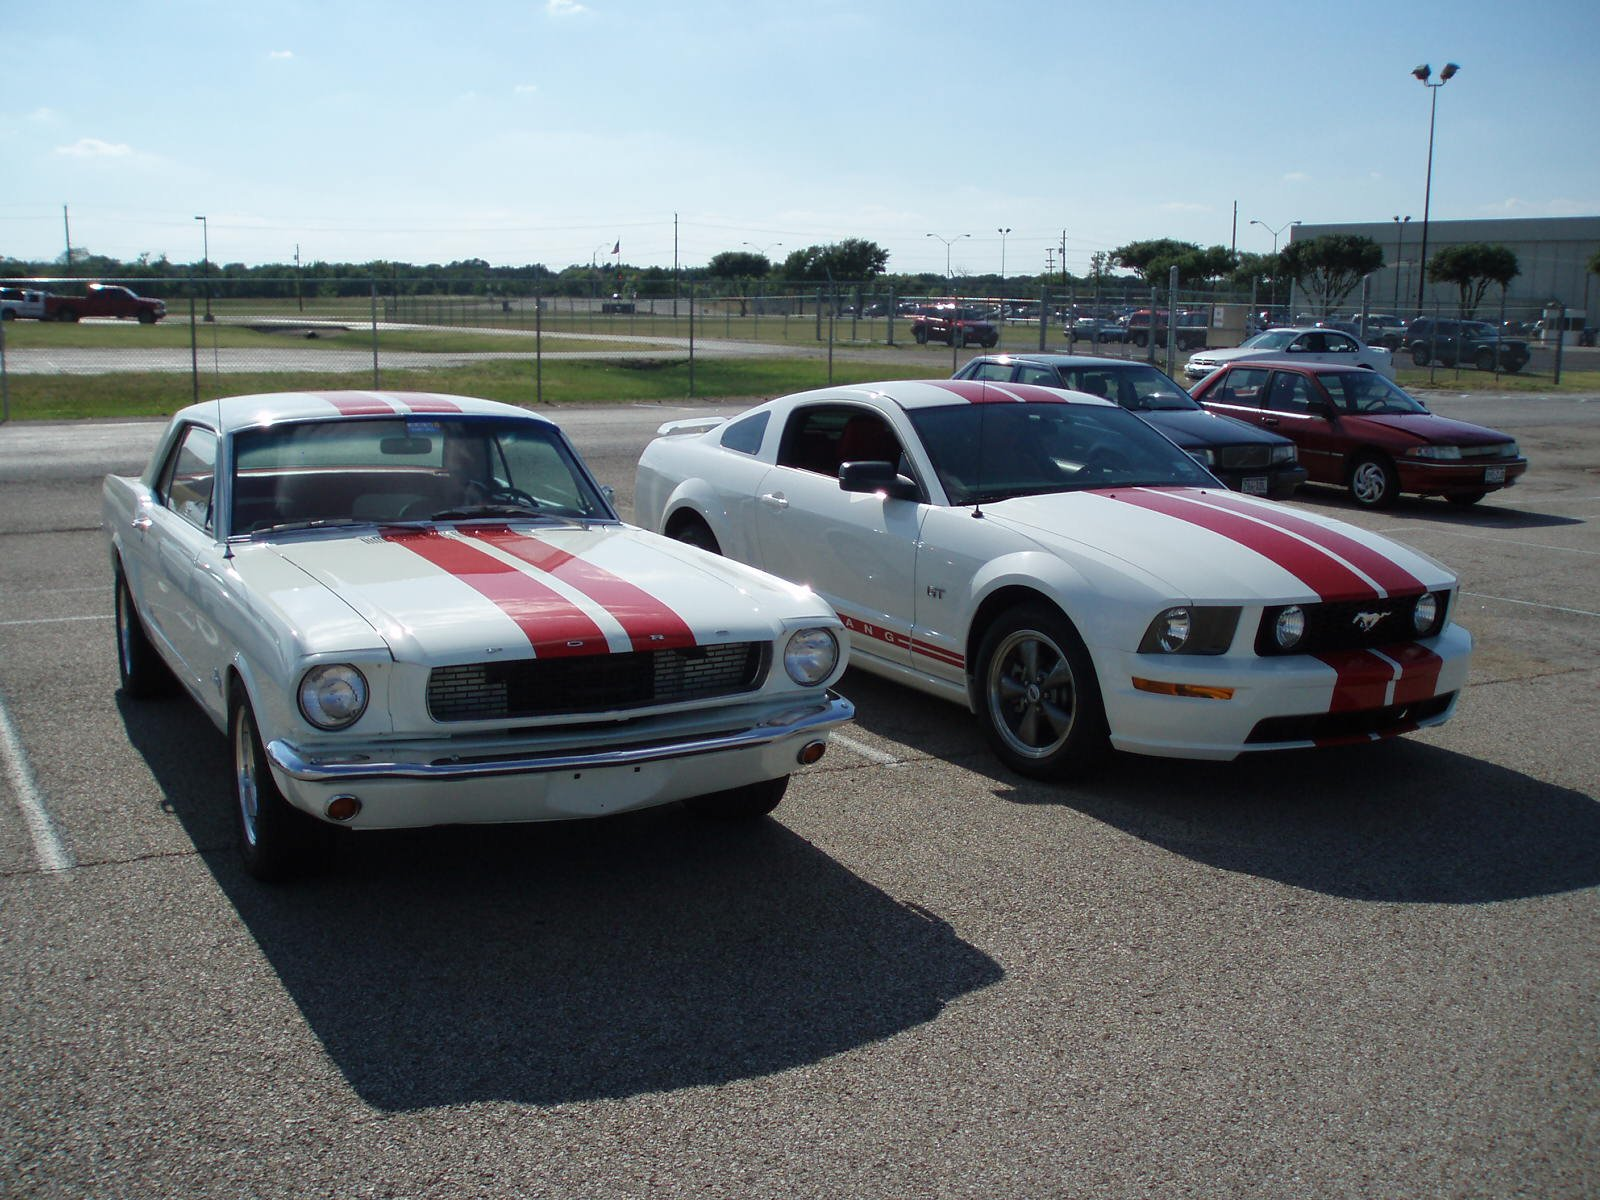 Ford Mustang Forum View Single Post Old Vs New Photo Op